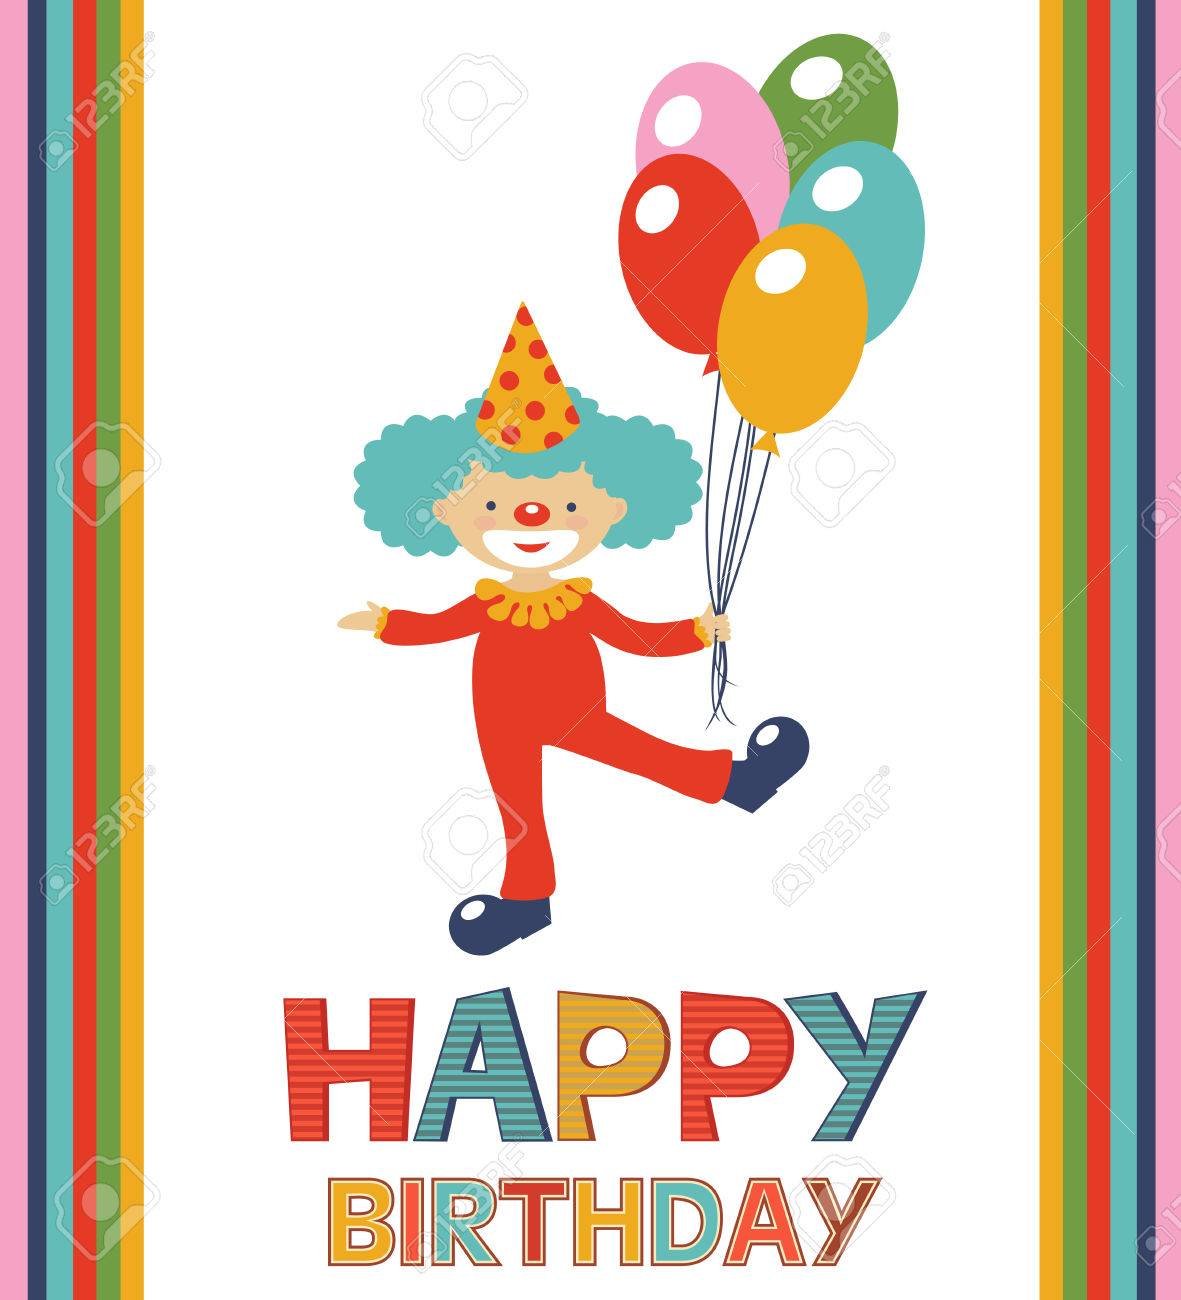 Birthday Card With Happy Clown Royalty Free Cliparts Vectors And – Clown Birthday Cards